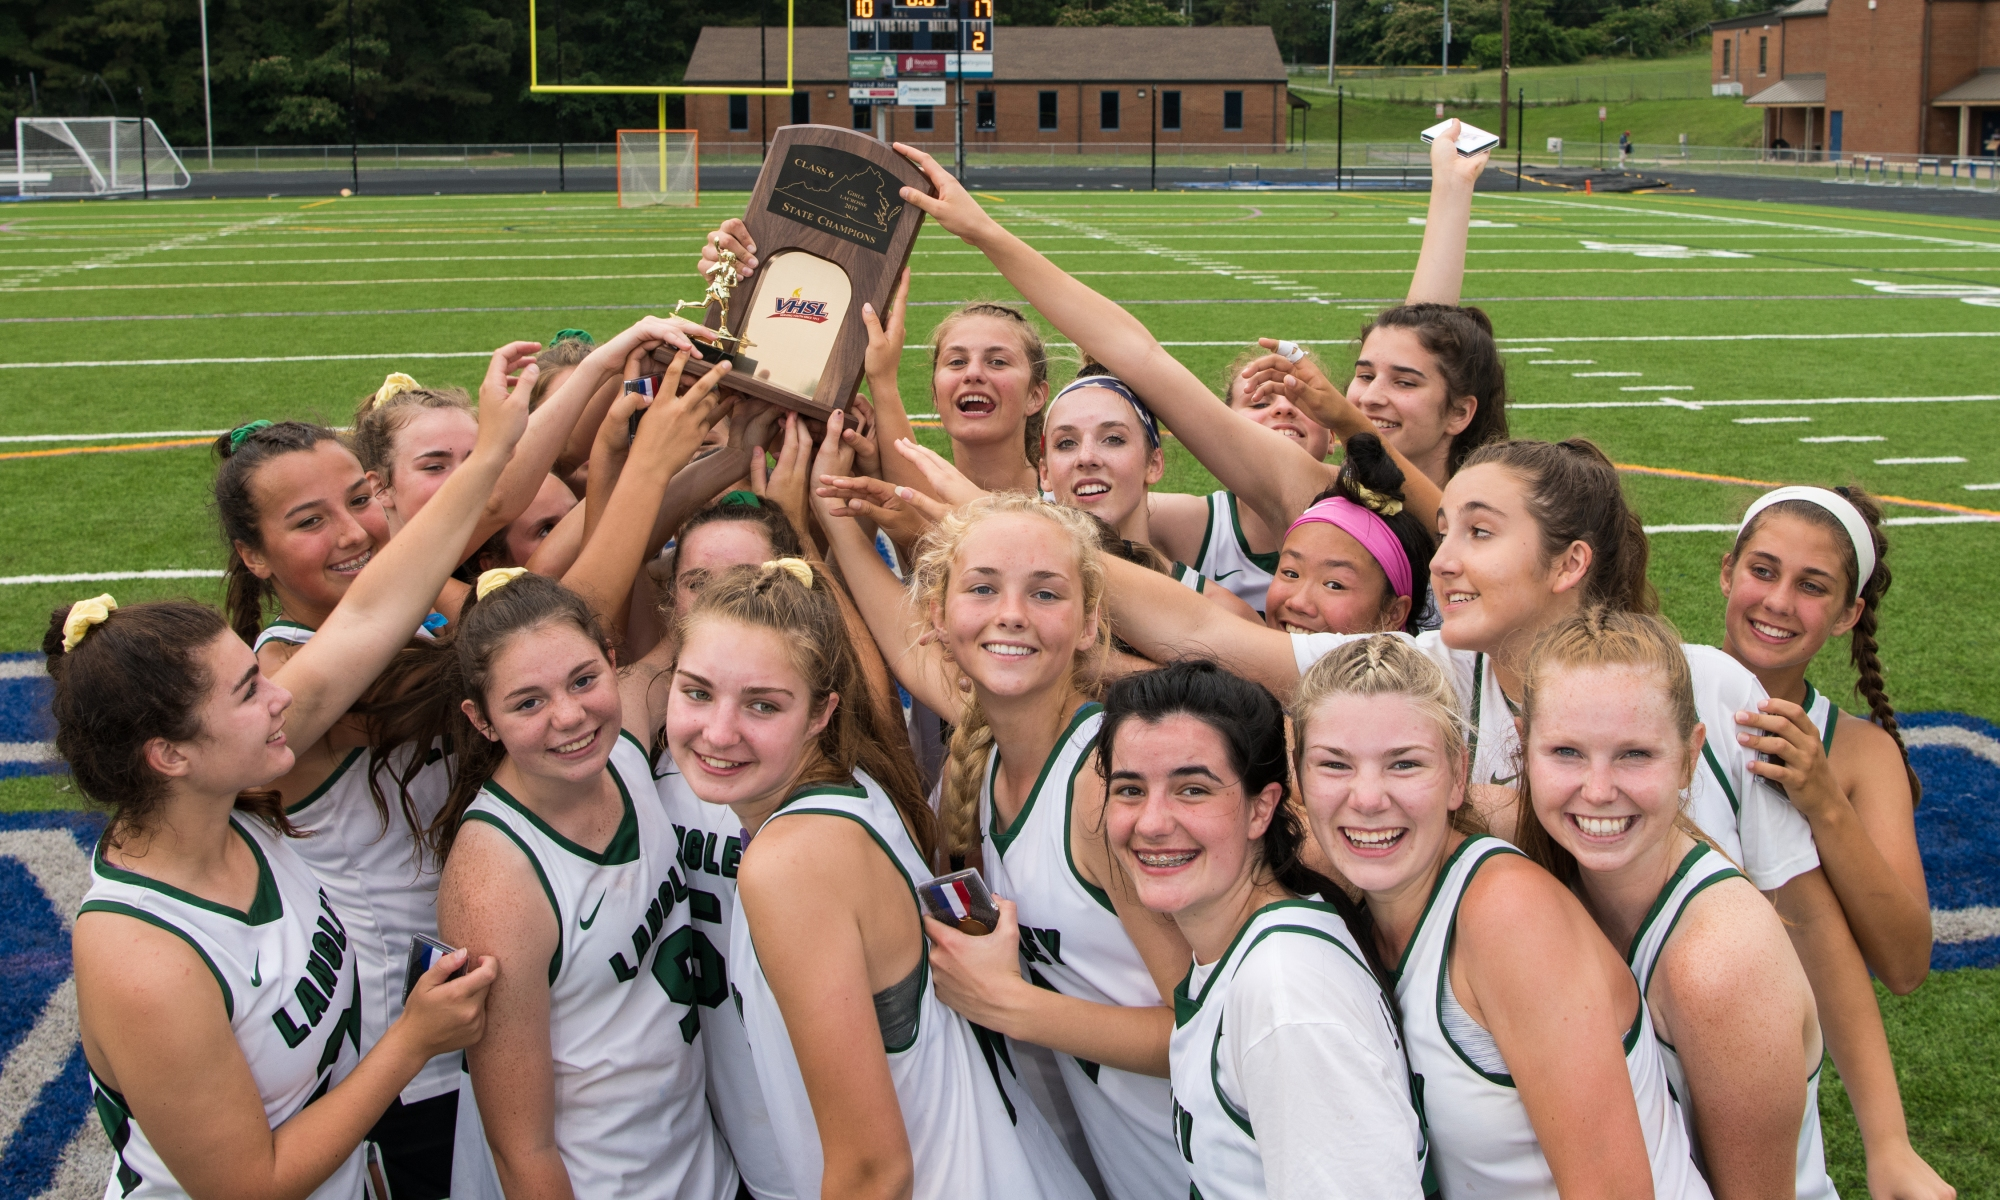 Langley Girls Lacrosse 2019, Virginia State Champions